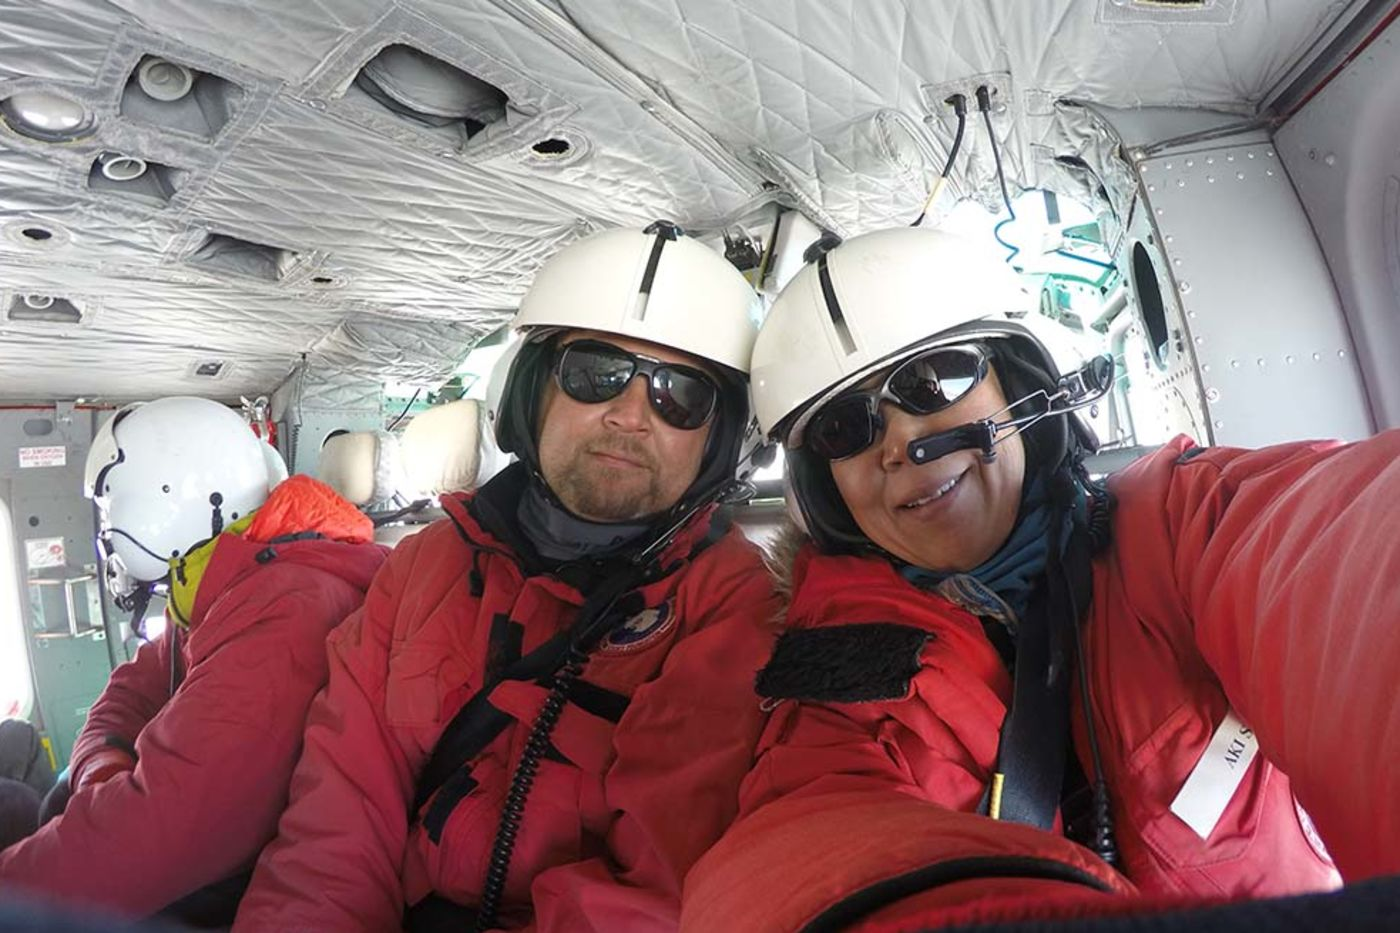 A man and a woman in red suits, white helmets, and sunglasses aboard a helicopter.